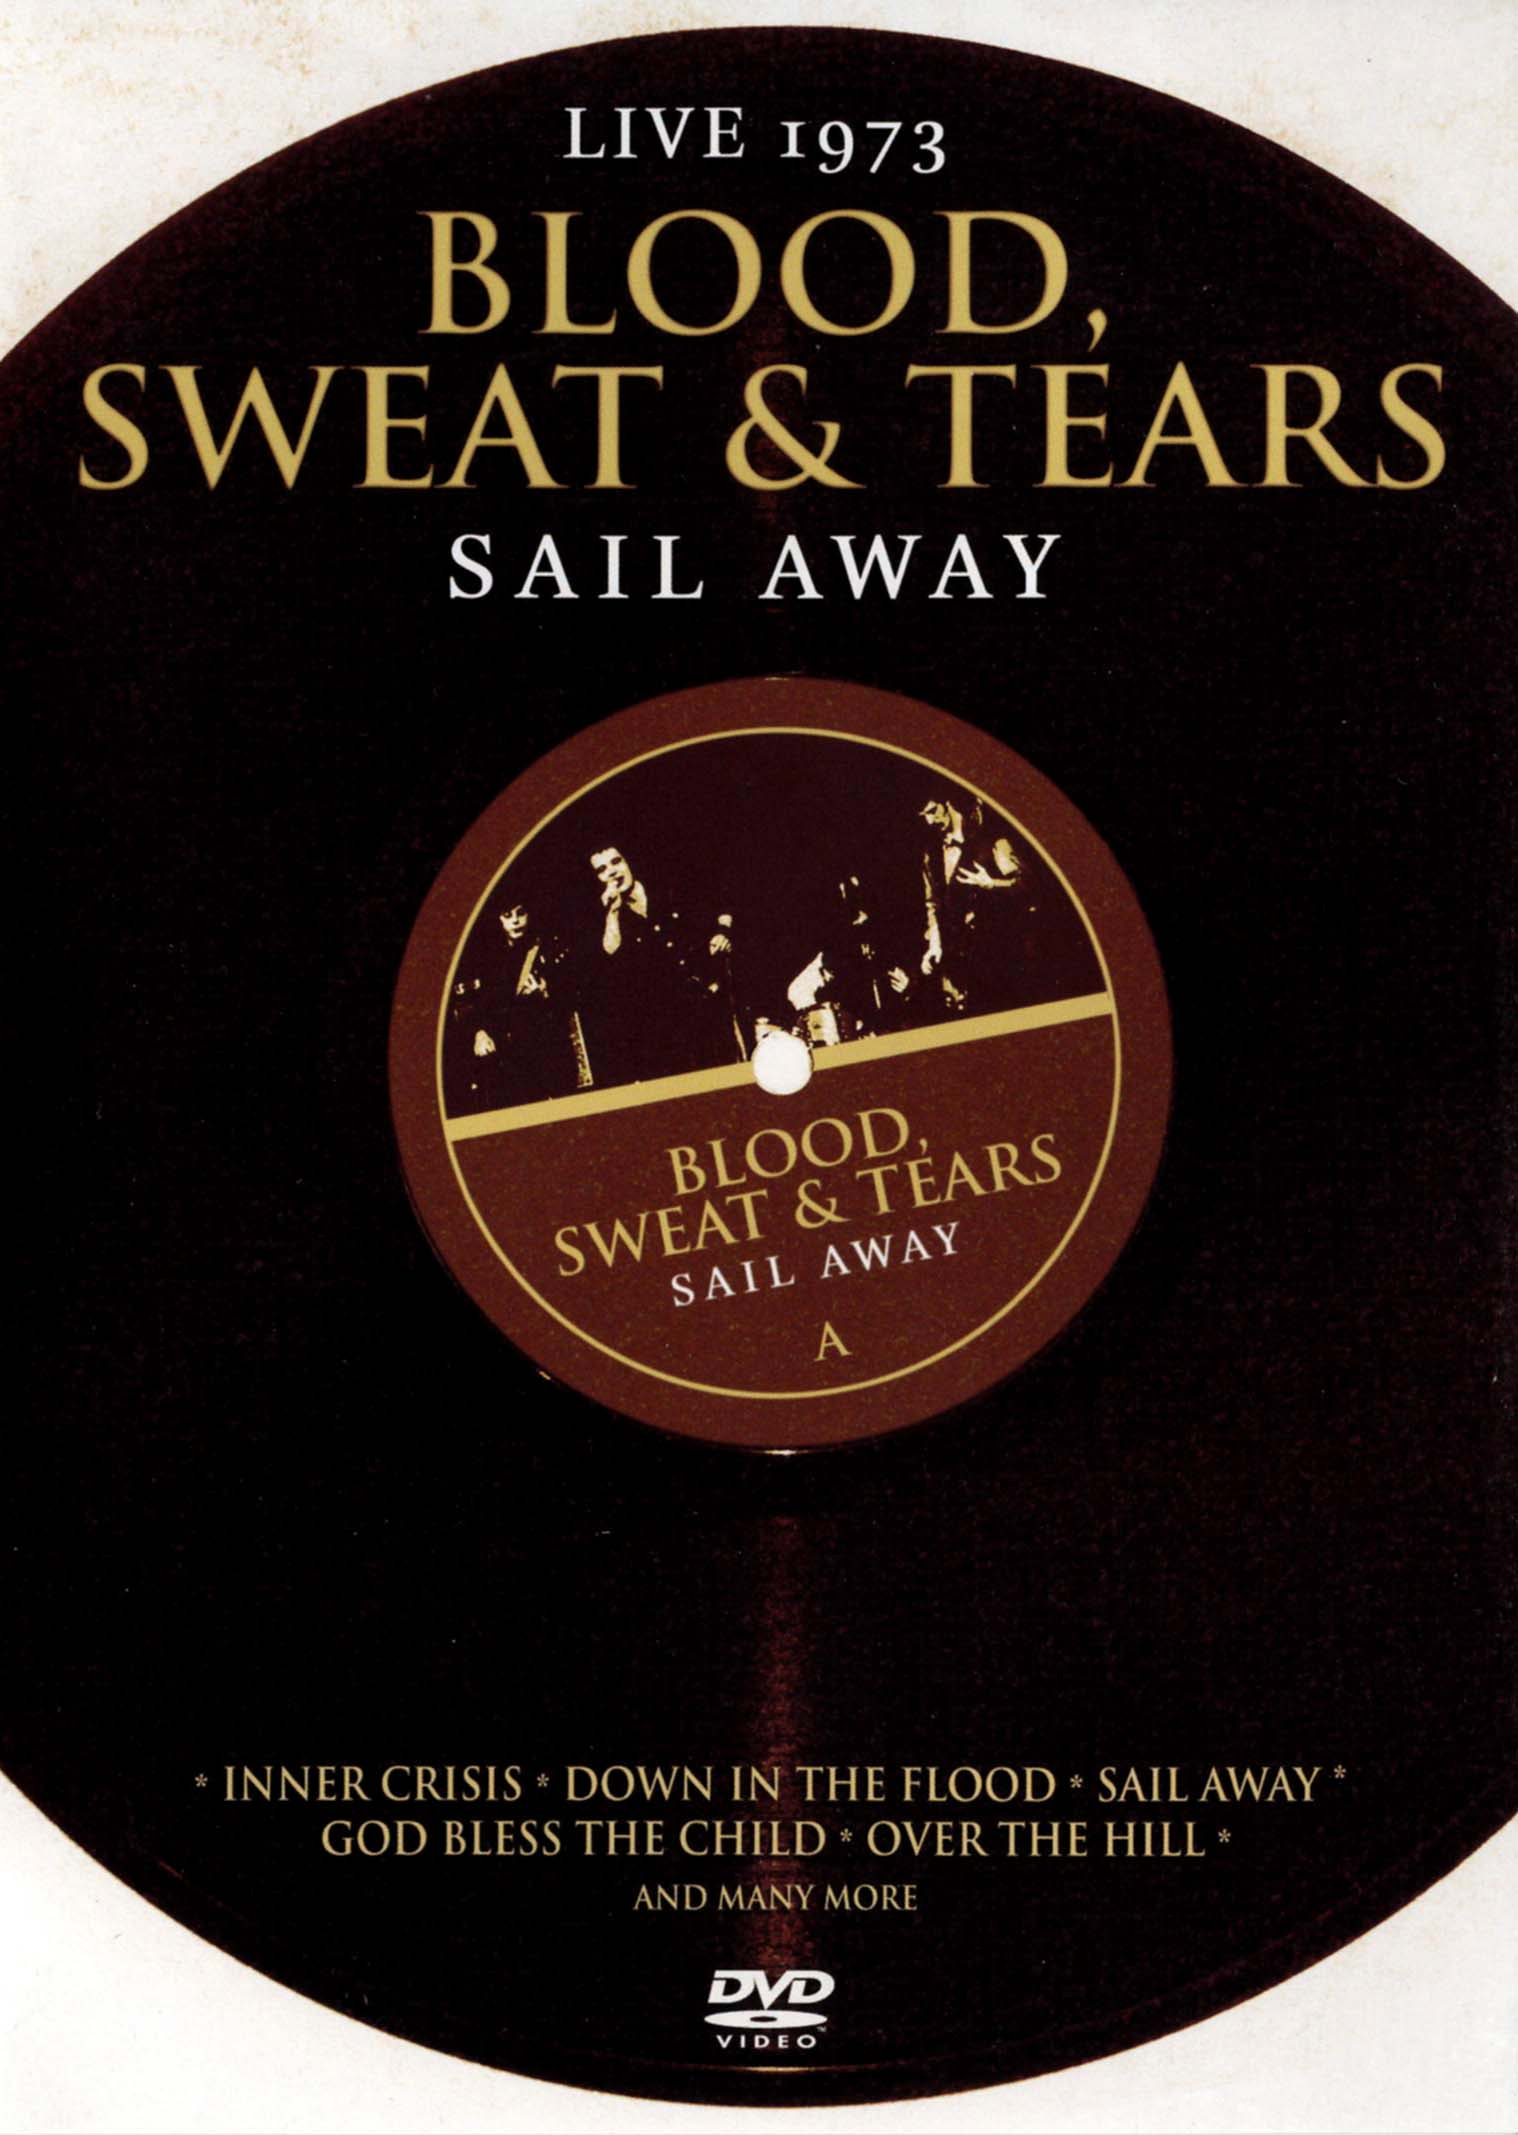 Blood, Sweat & Tears: Sail Away - Live 1973